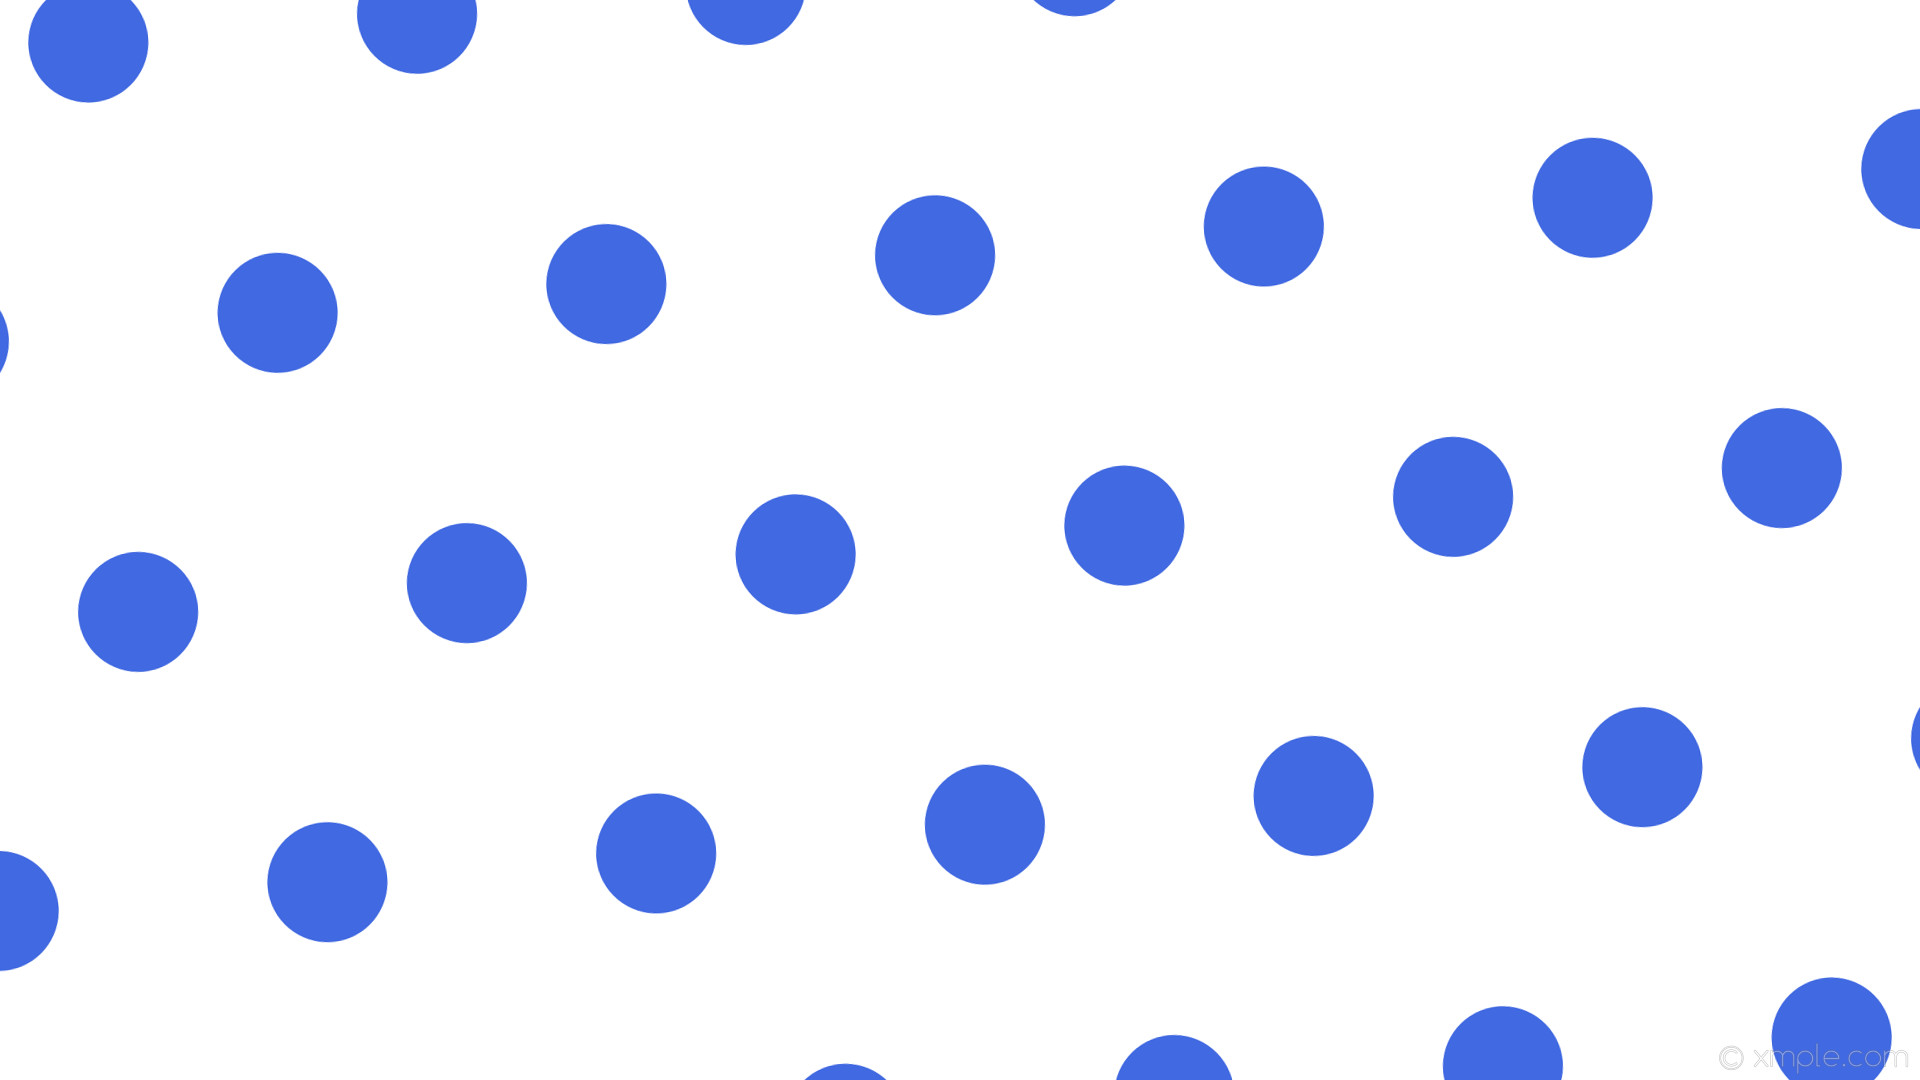 wallpaper white polka dots hexagon blue royal blue #ffffff #4169e1 diagonal  5° 120px